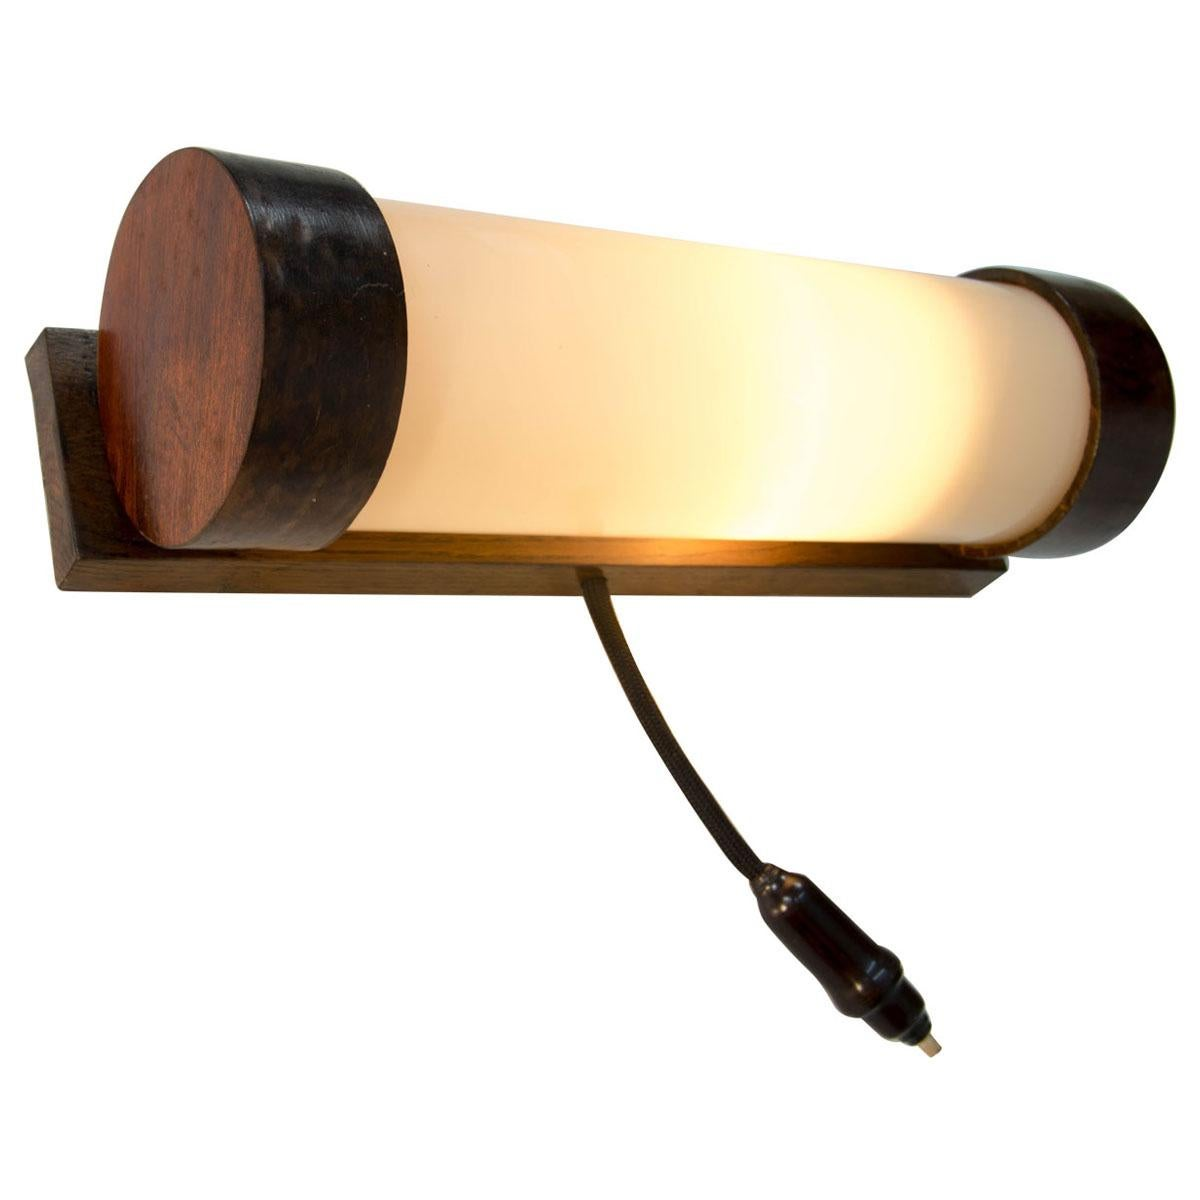 Art Deco Wooden Wall Lamp/Scone, 1930s